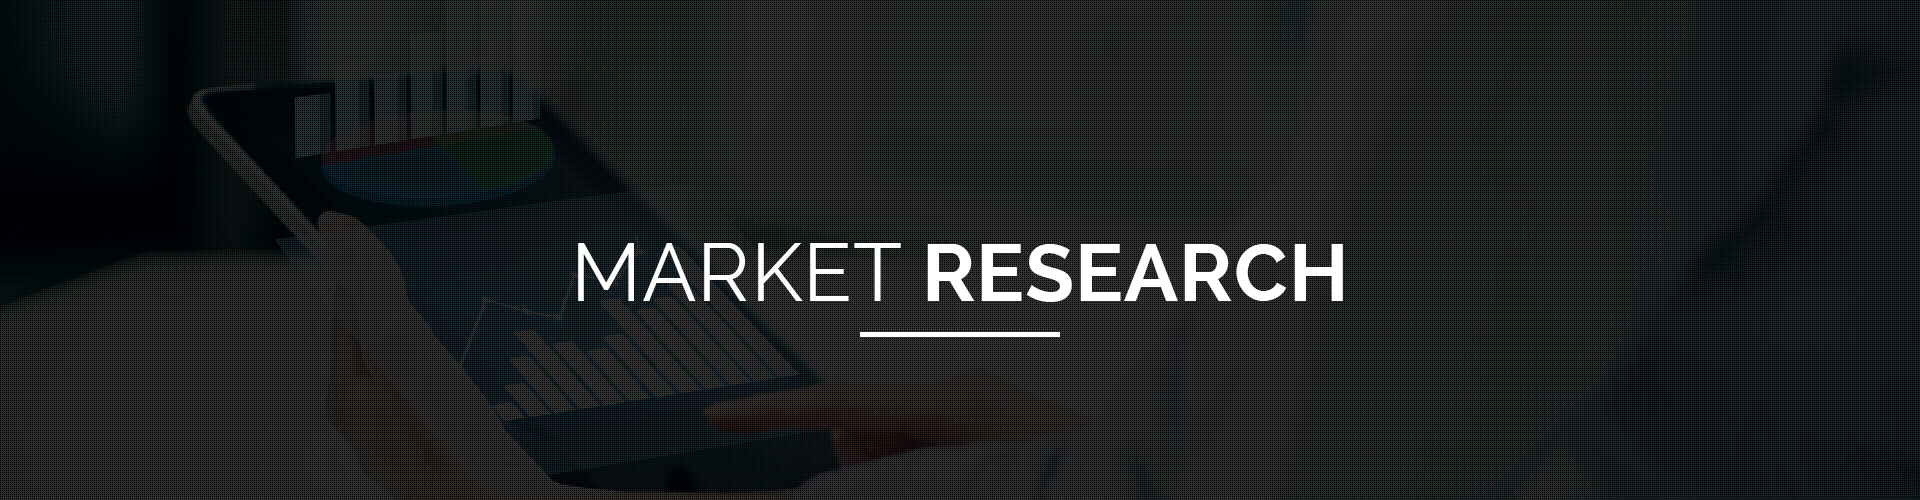 market research companies - 1920×500